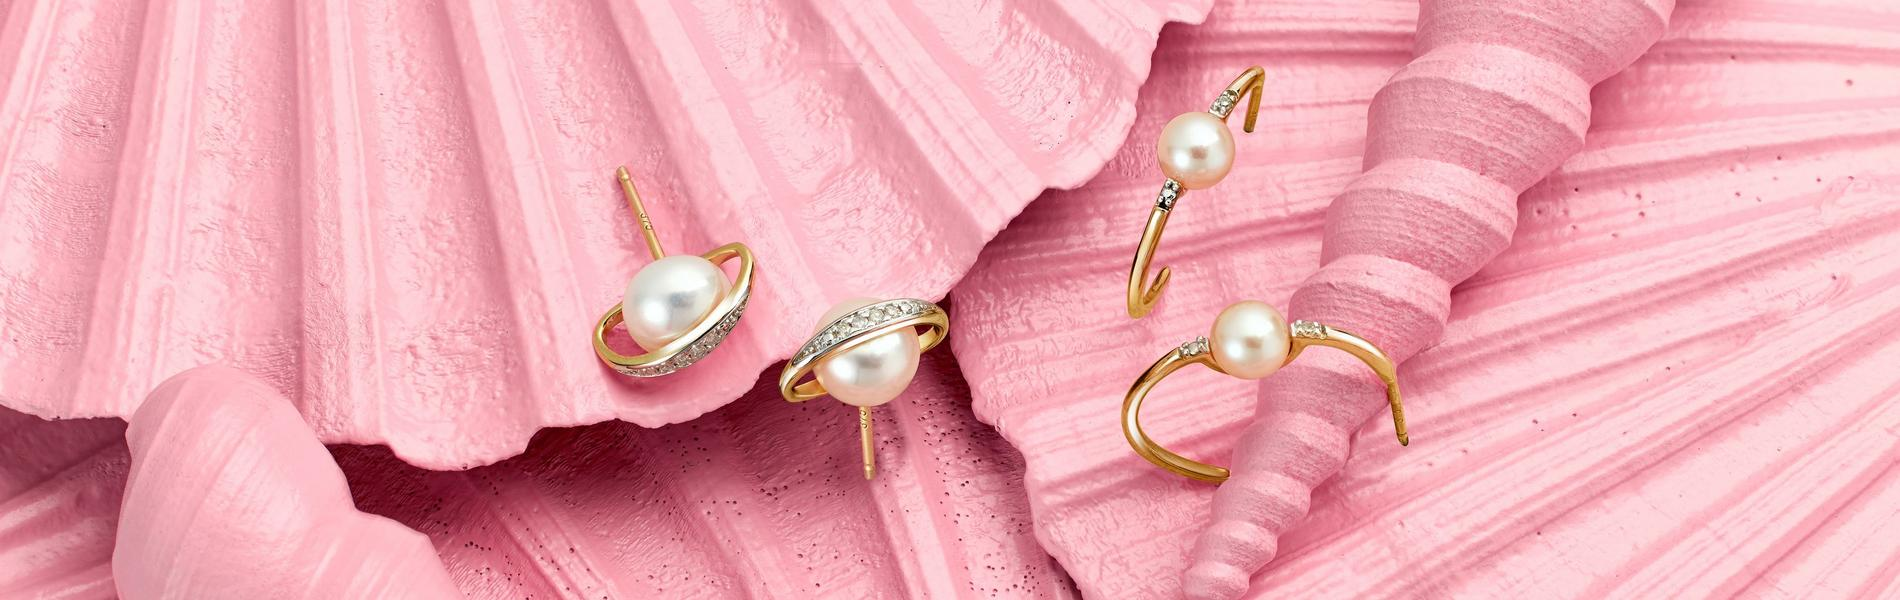 Pearl jewellery on pink shells